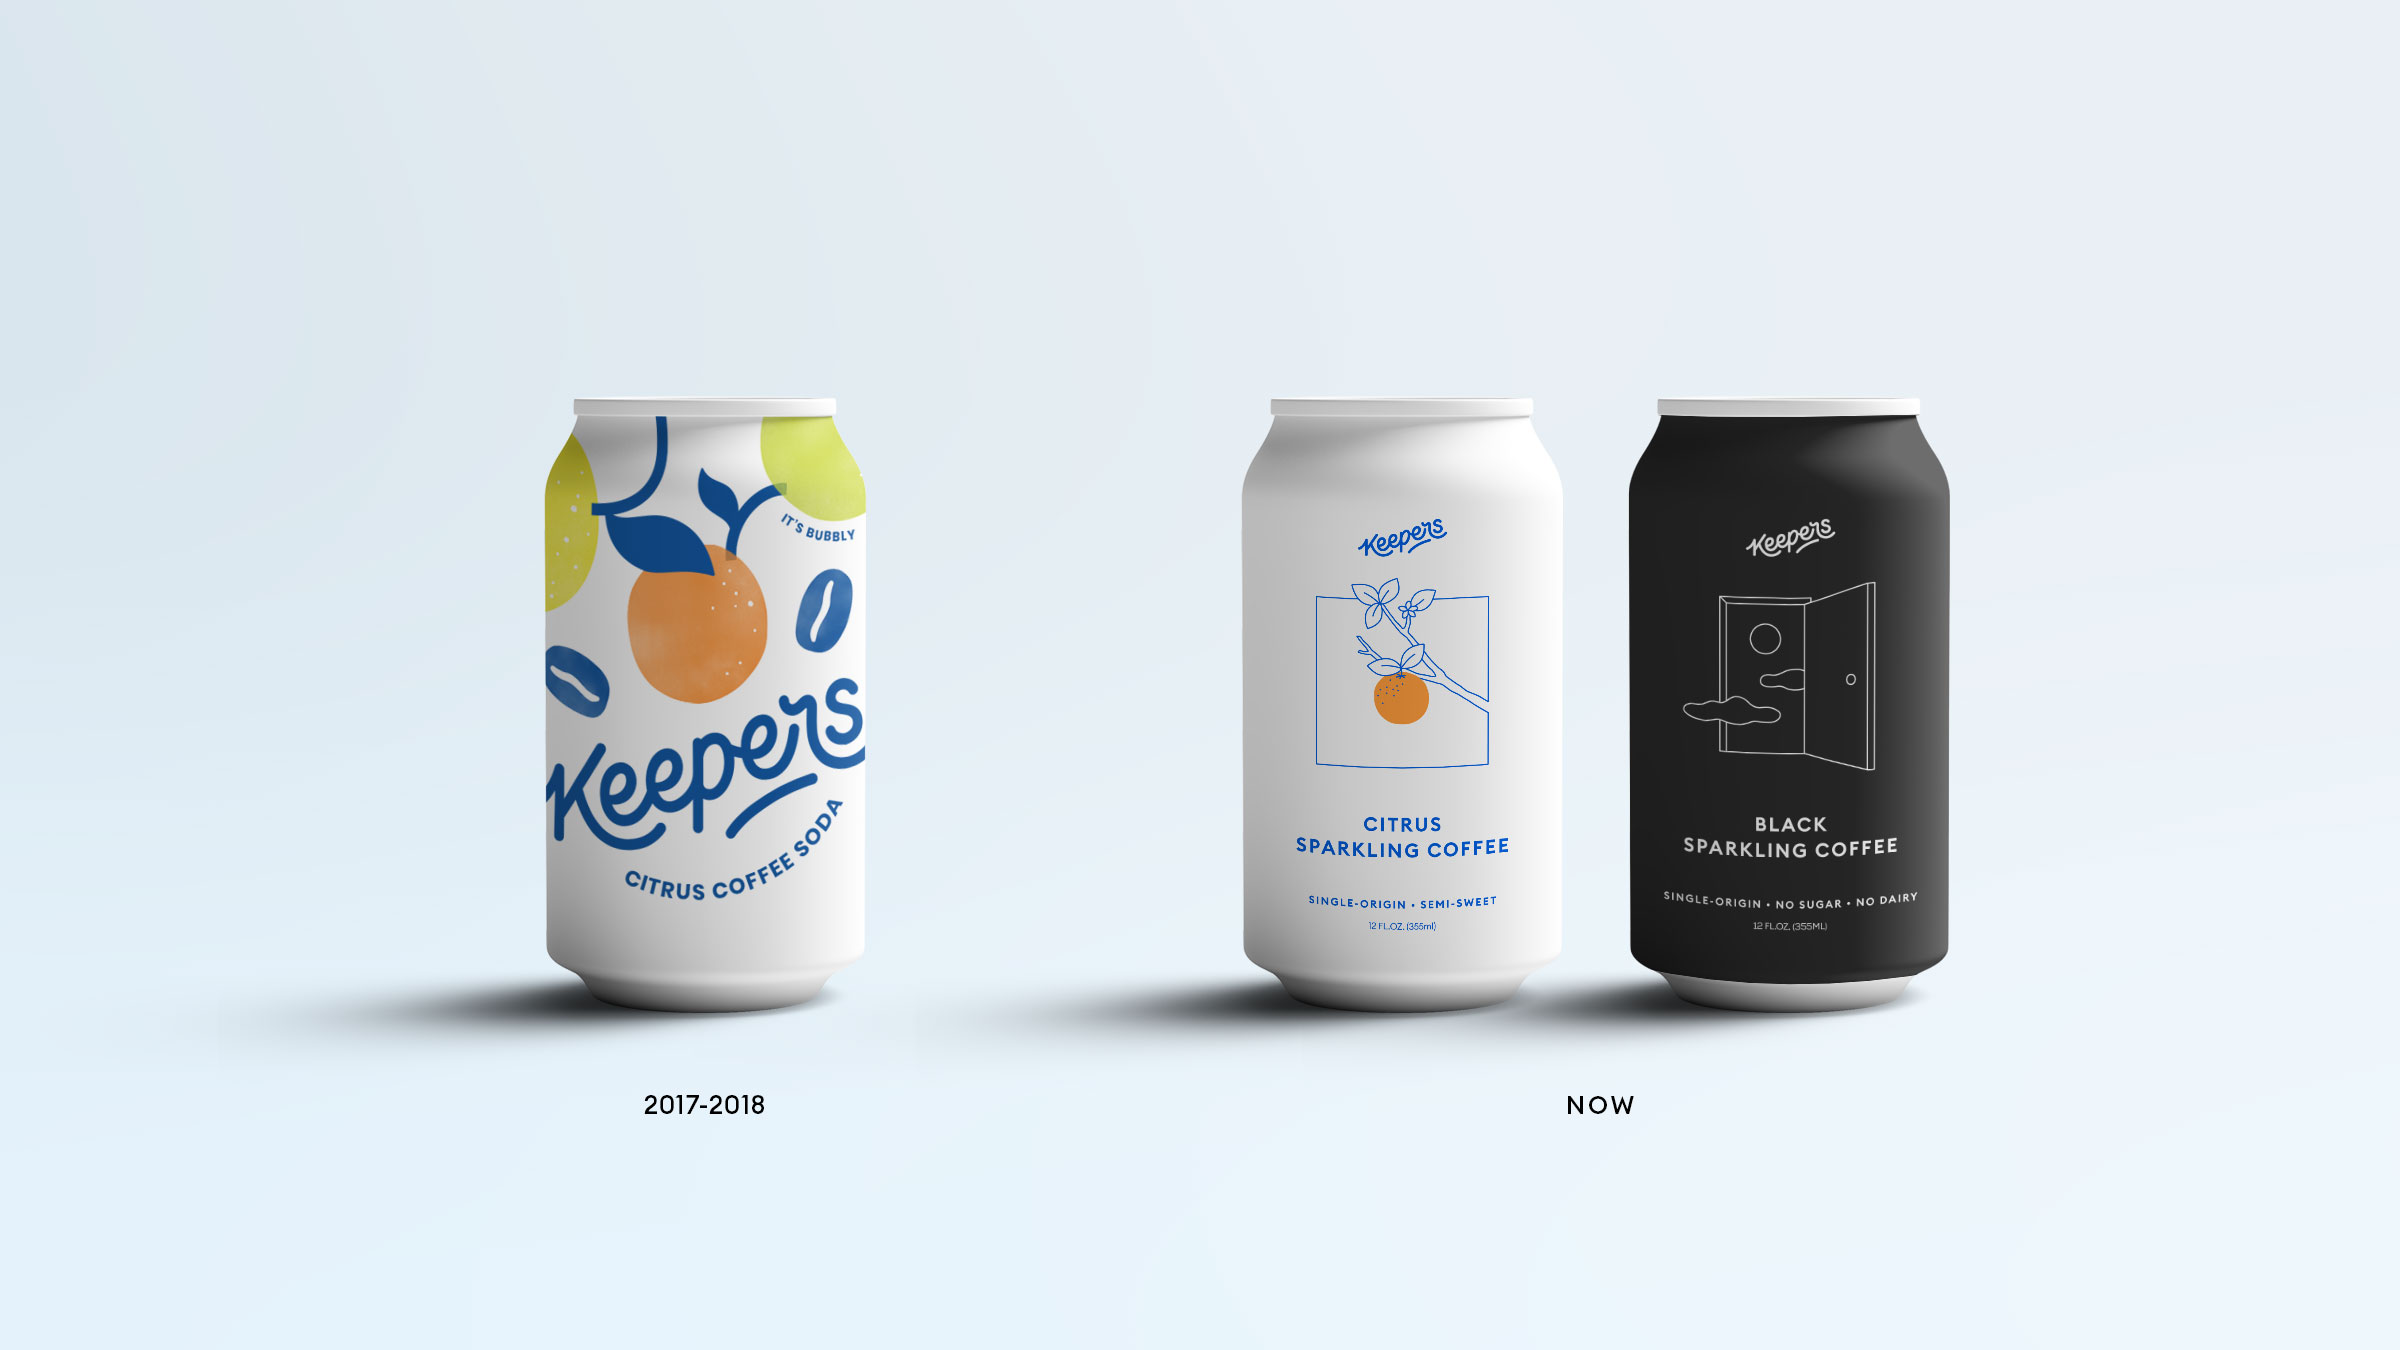 Progression of product design for Keepers from the early fun summer look to the minimal arty re-design.